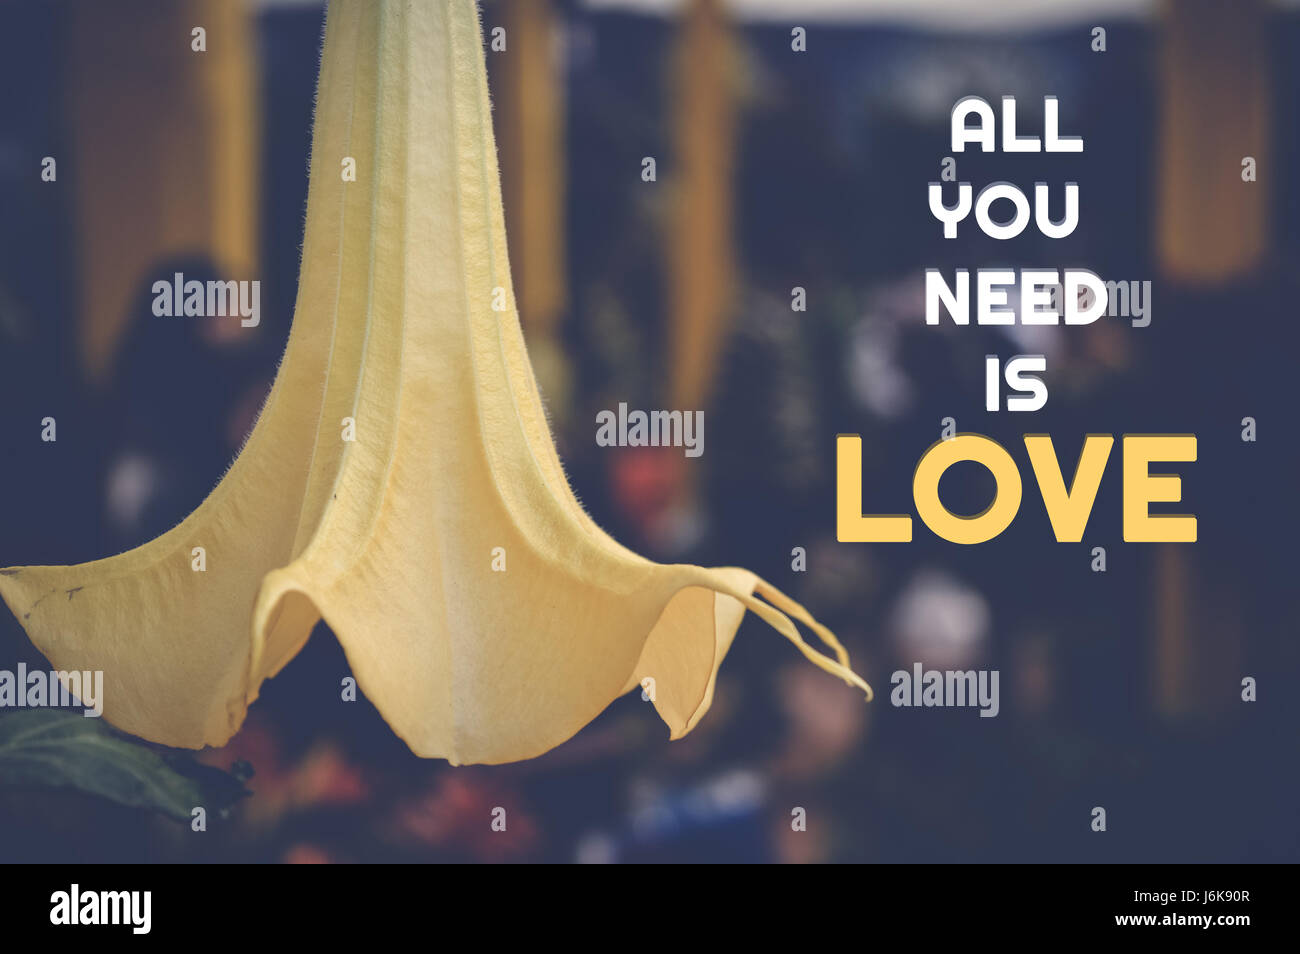 Love Quote With Yellow Flower Background All You Need Is Love Stock